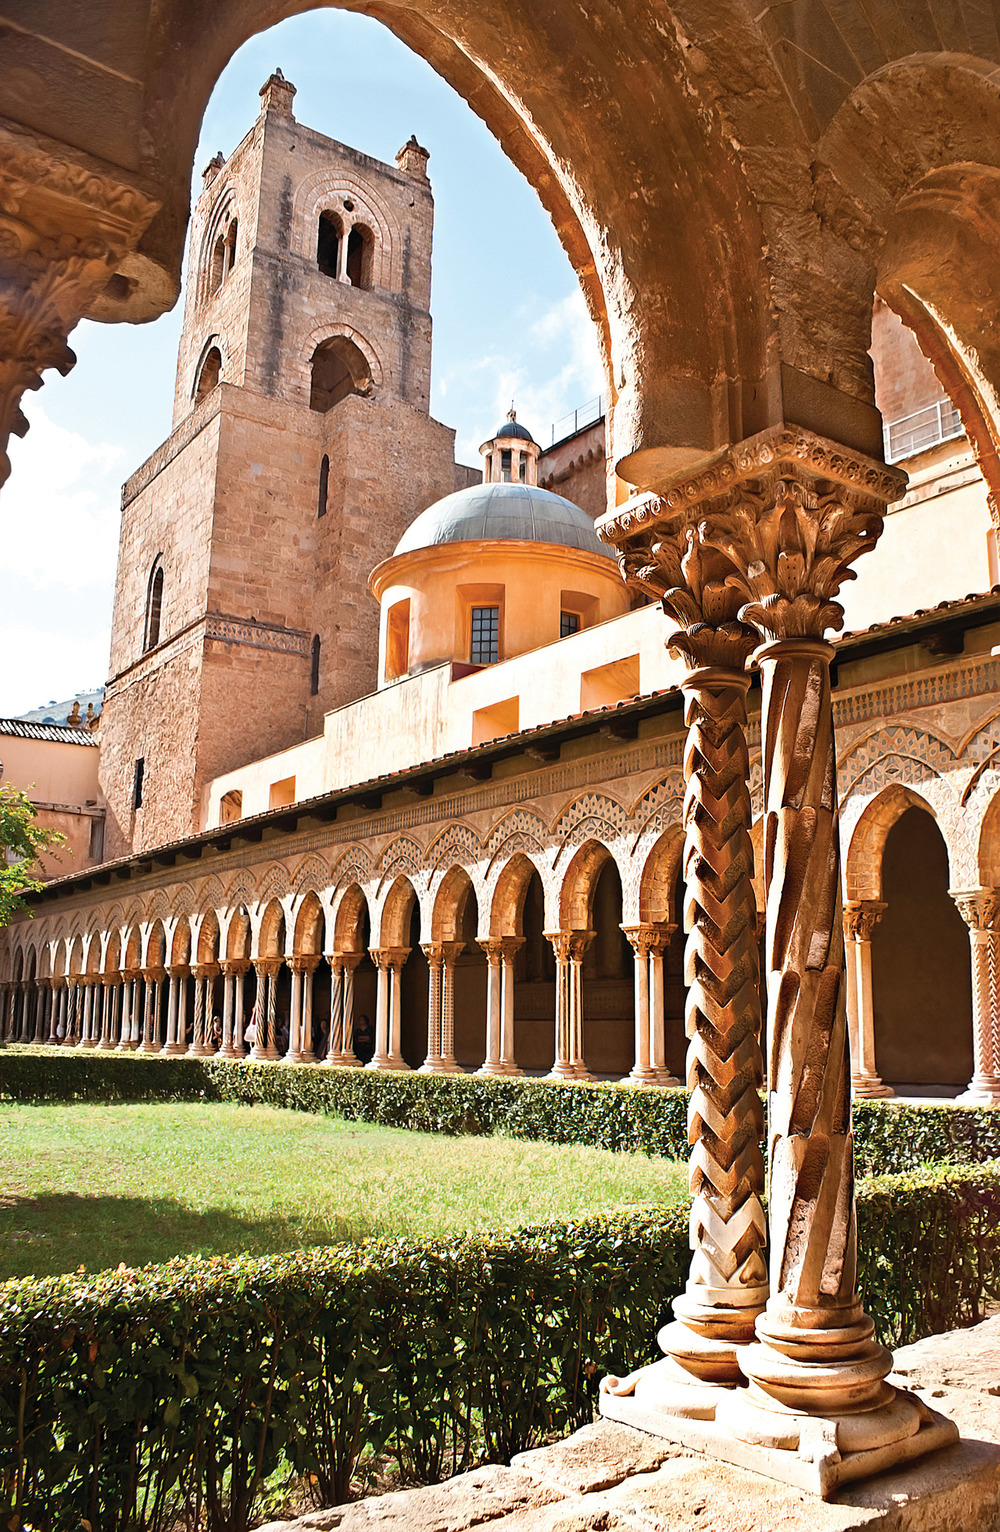 The cloisters at Monreale are comprised of 108 pairs of marble columns each adorned with a unique mosaic. eFesenko / Shutterstock.com